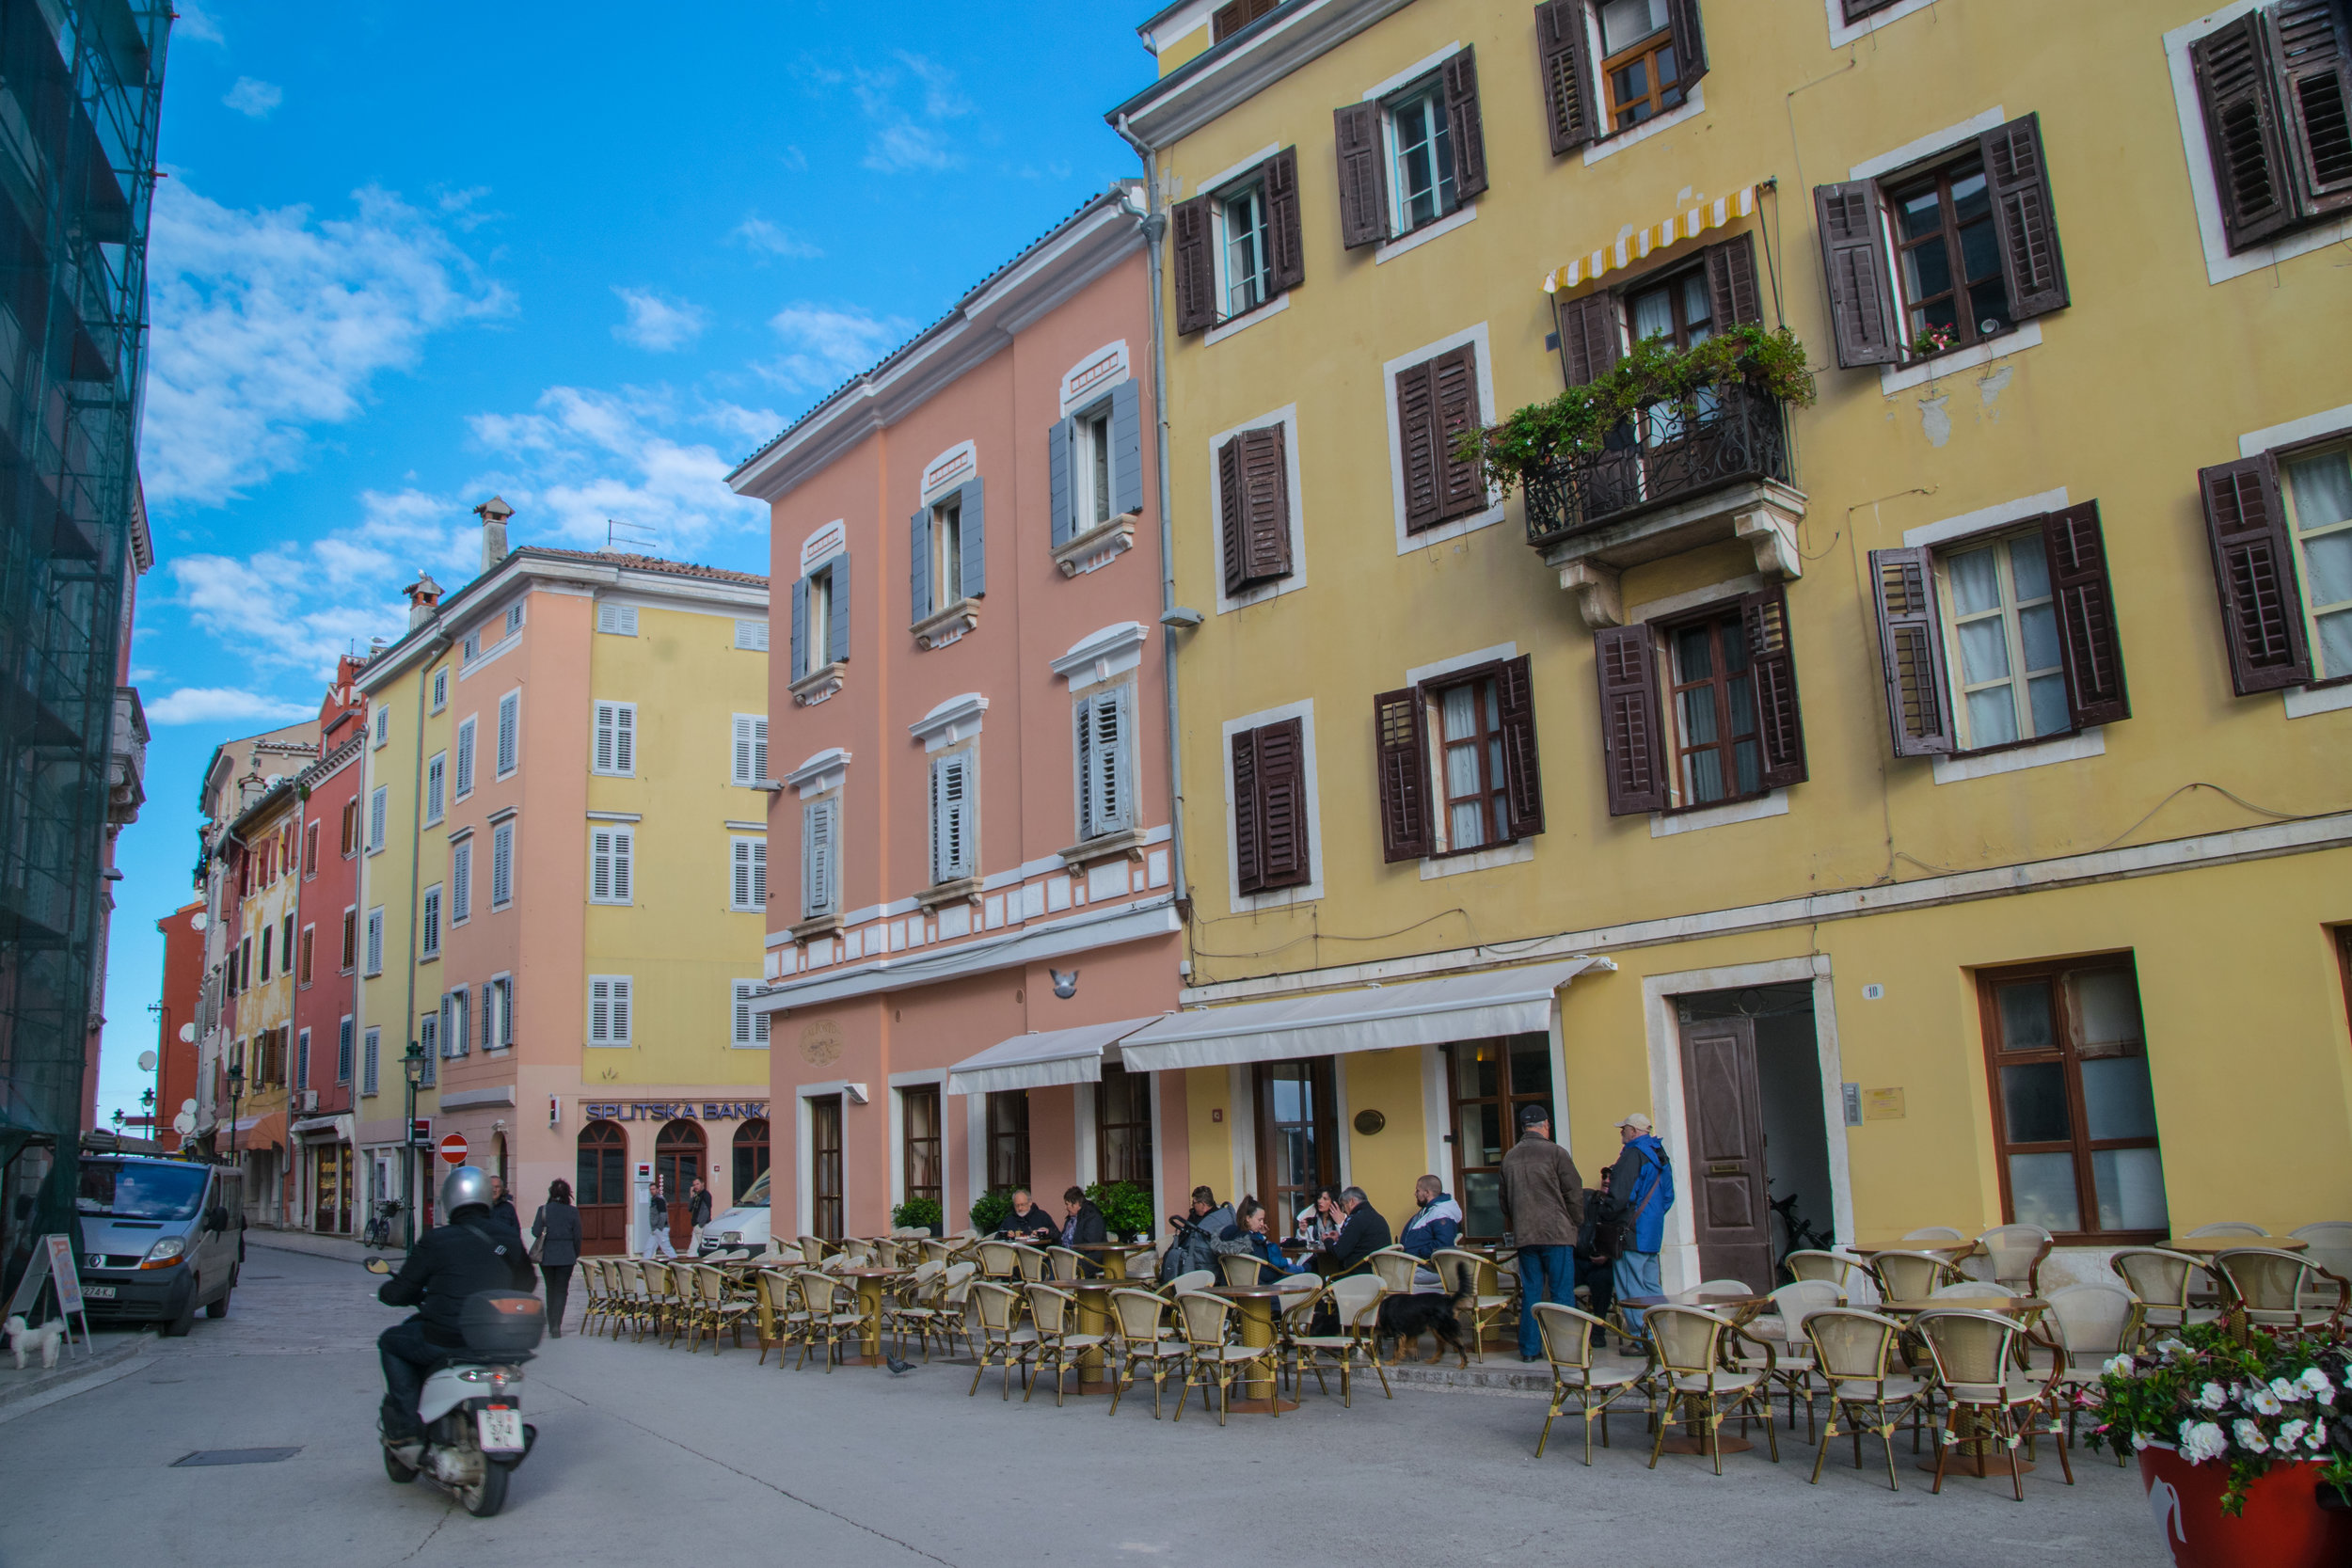 one of Rovinj's many public spaces filled with café-goers